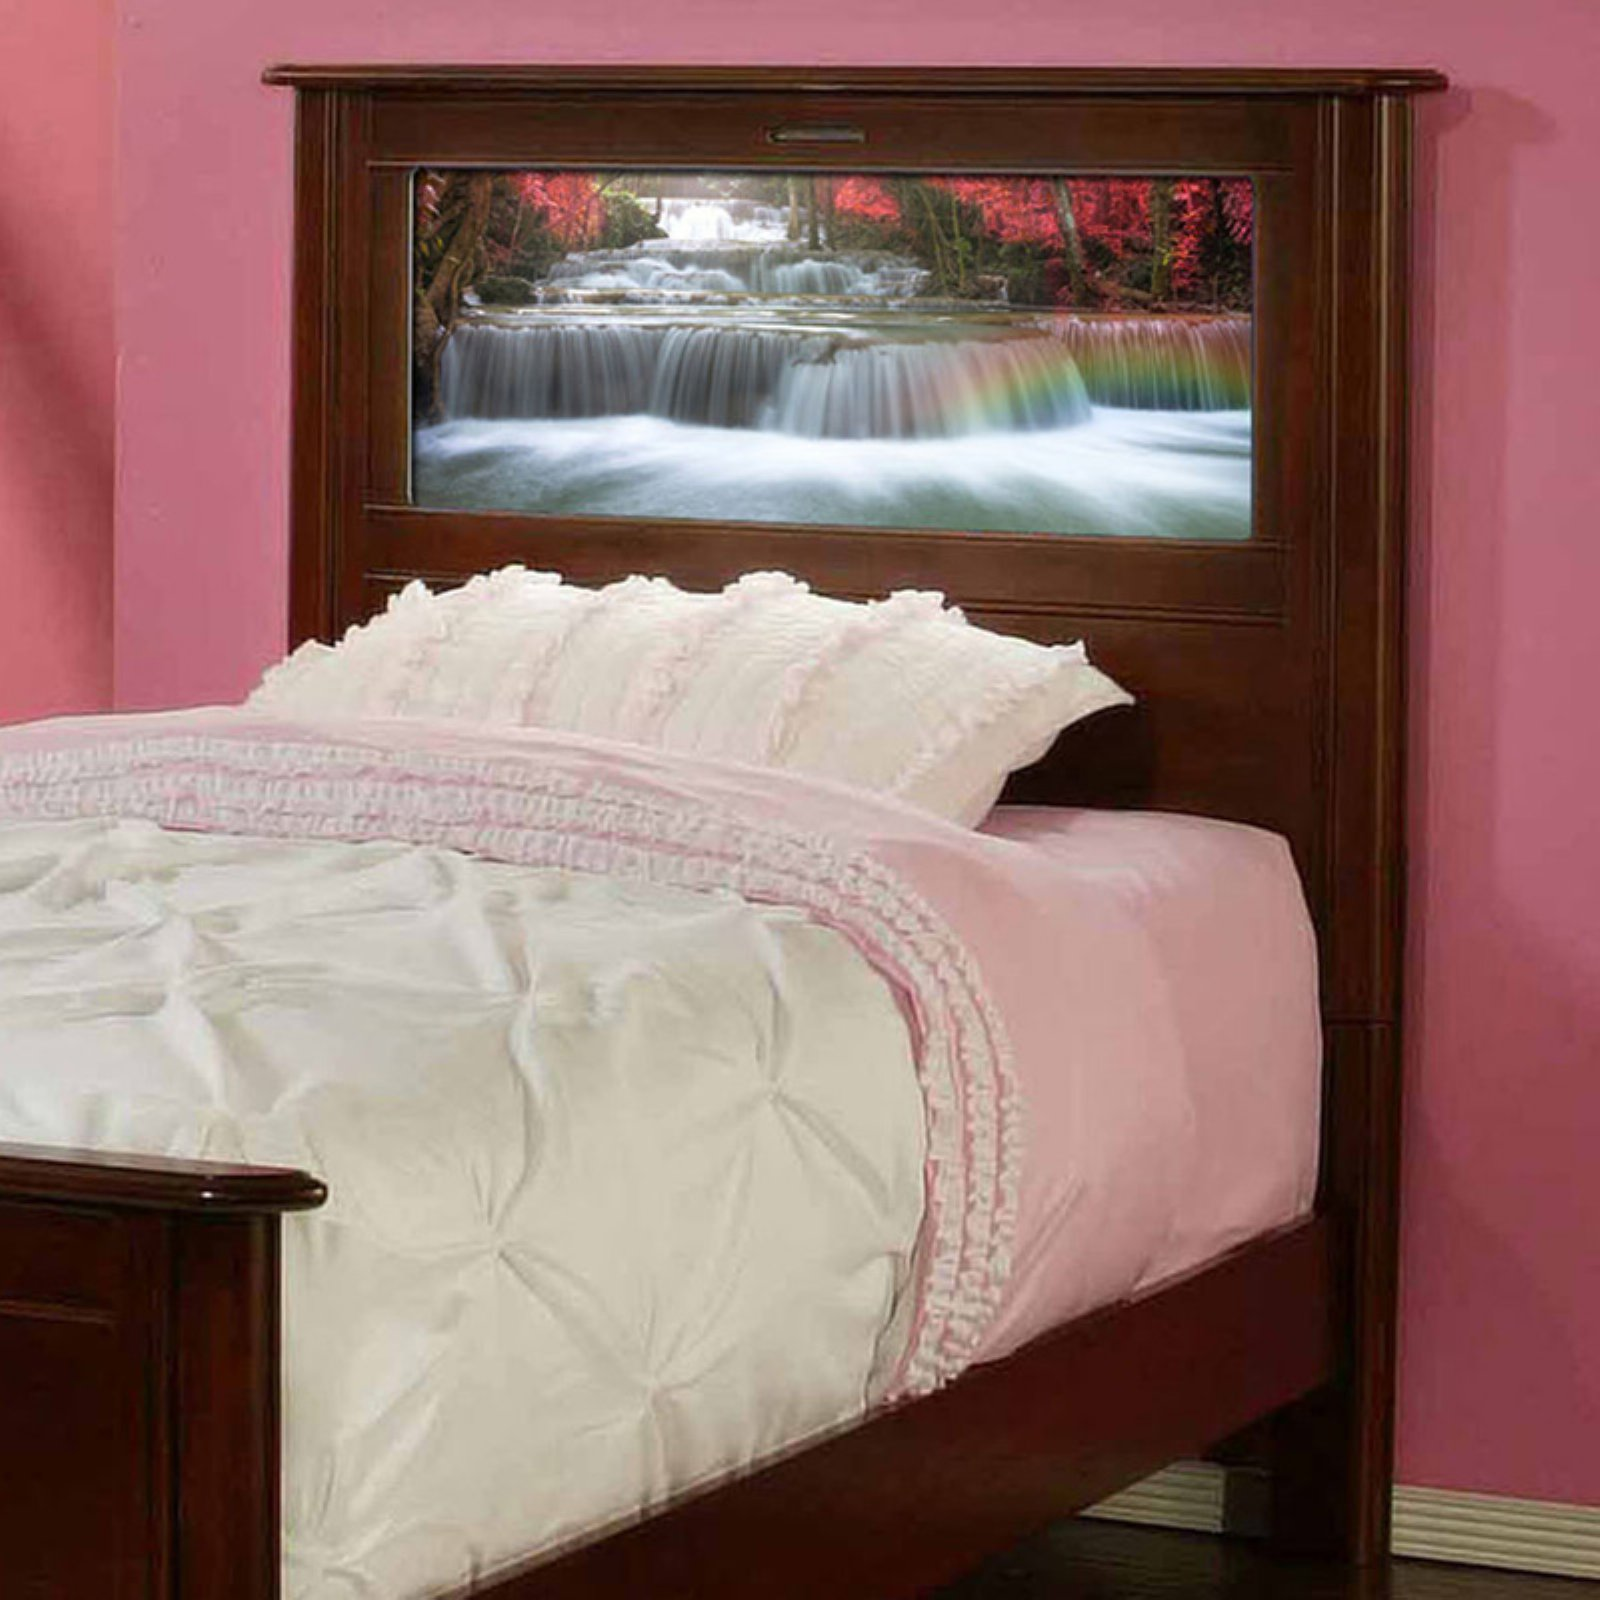 Lightheaded Beds Riviera Bed, Cherry, 20197